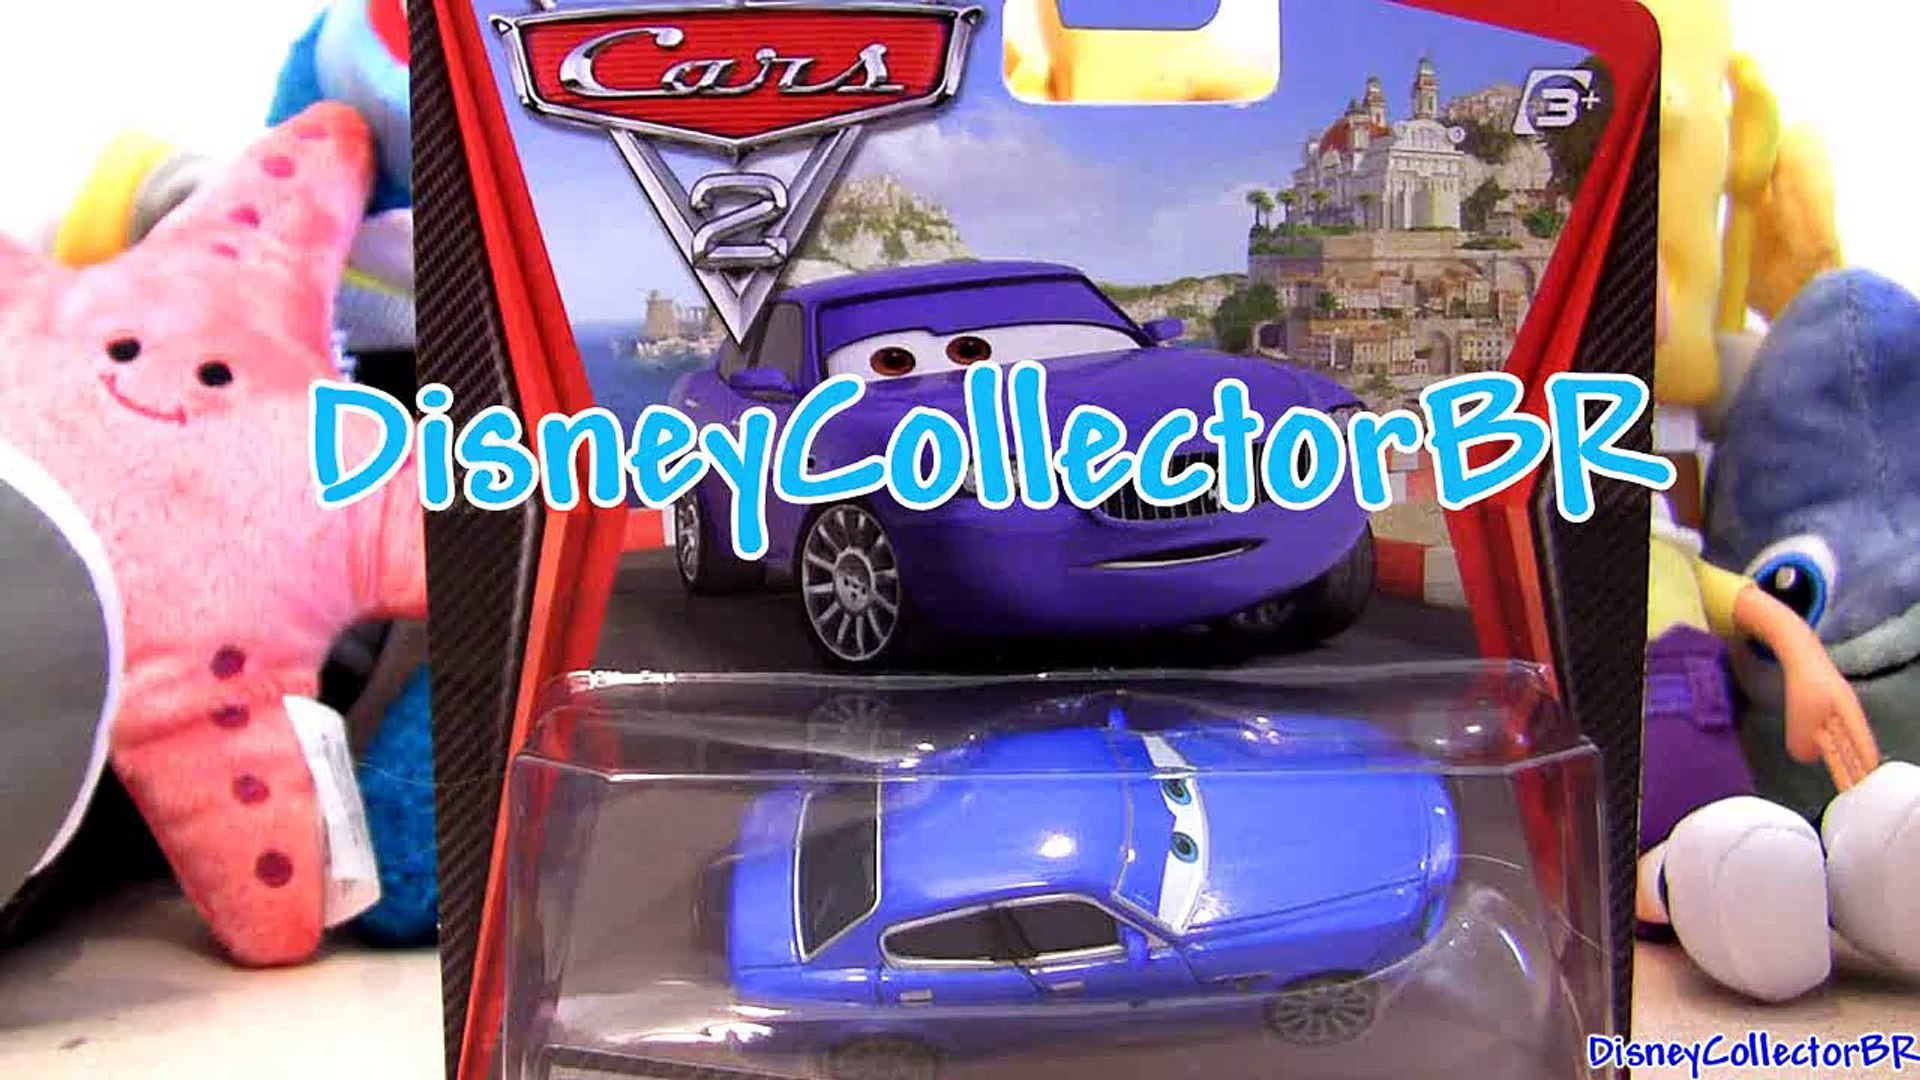 Disney Store Pixar Cars Dinoco Helicopter Die Cast Metallic Blue Bubble Pack NEW